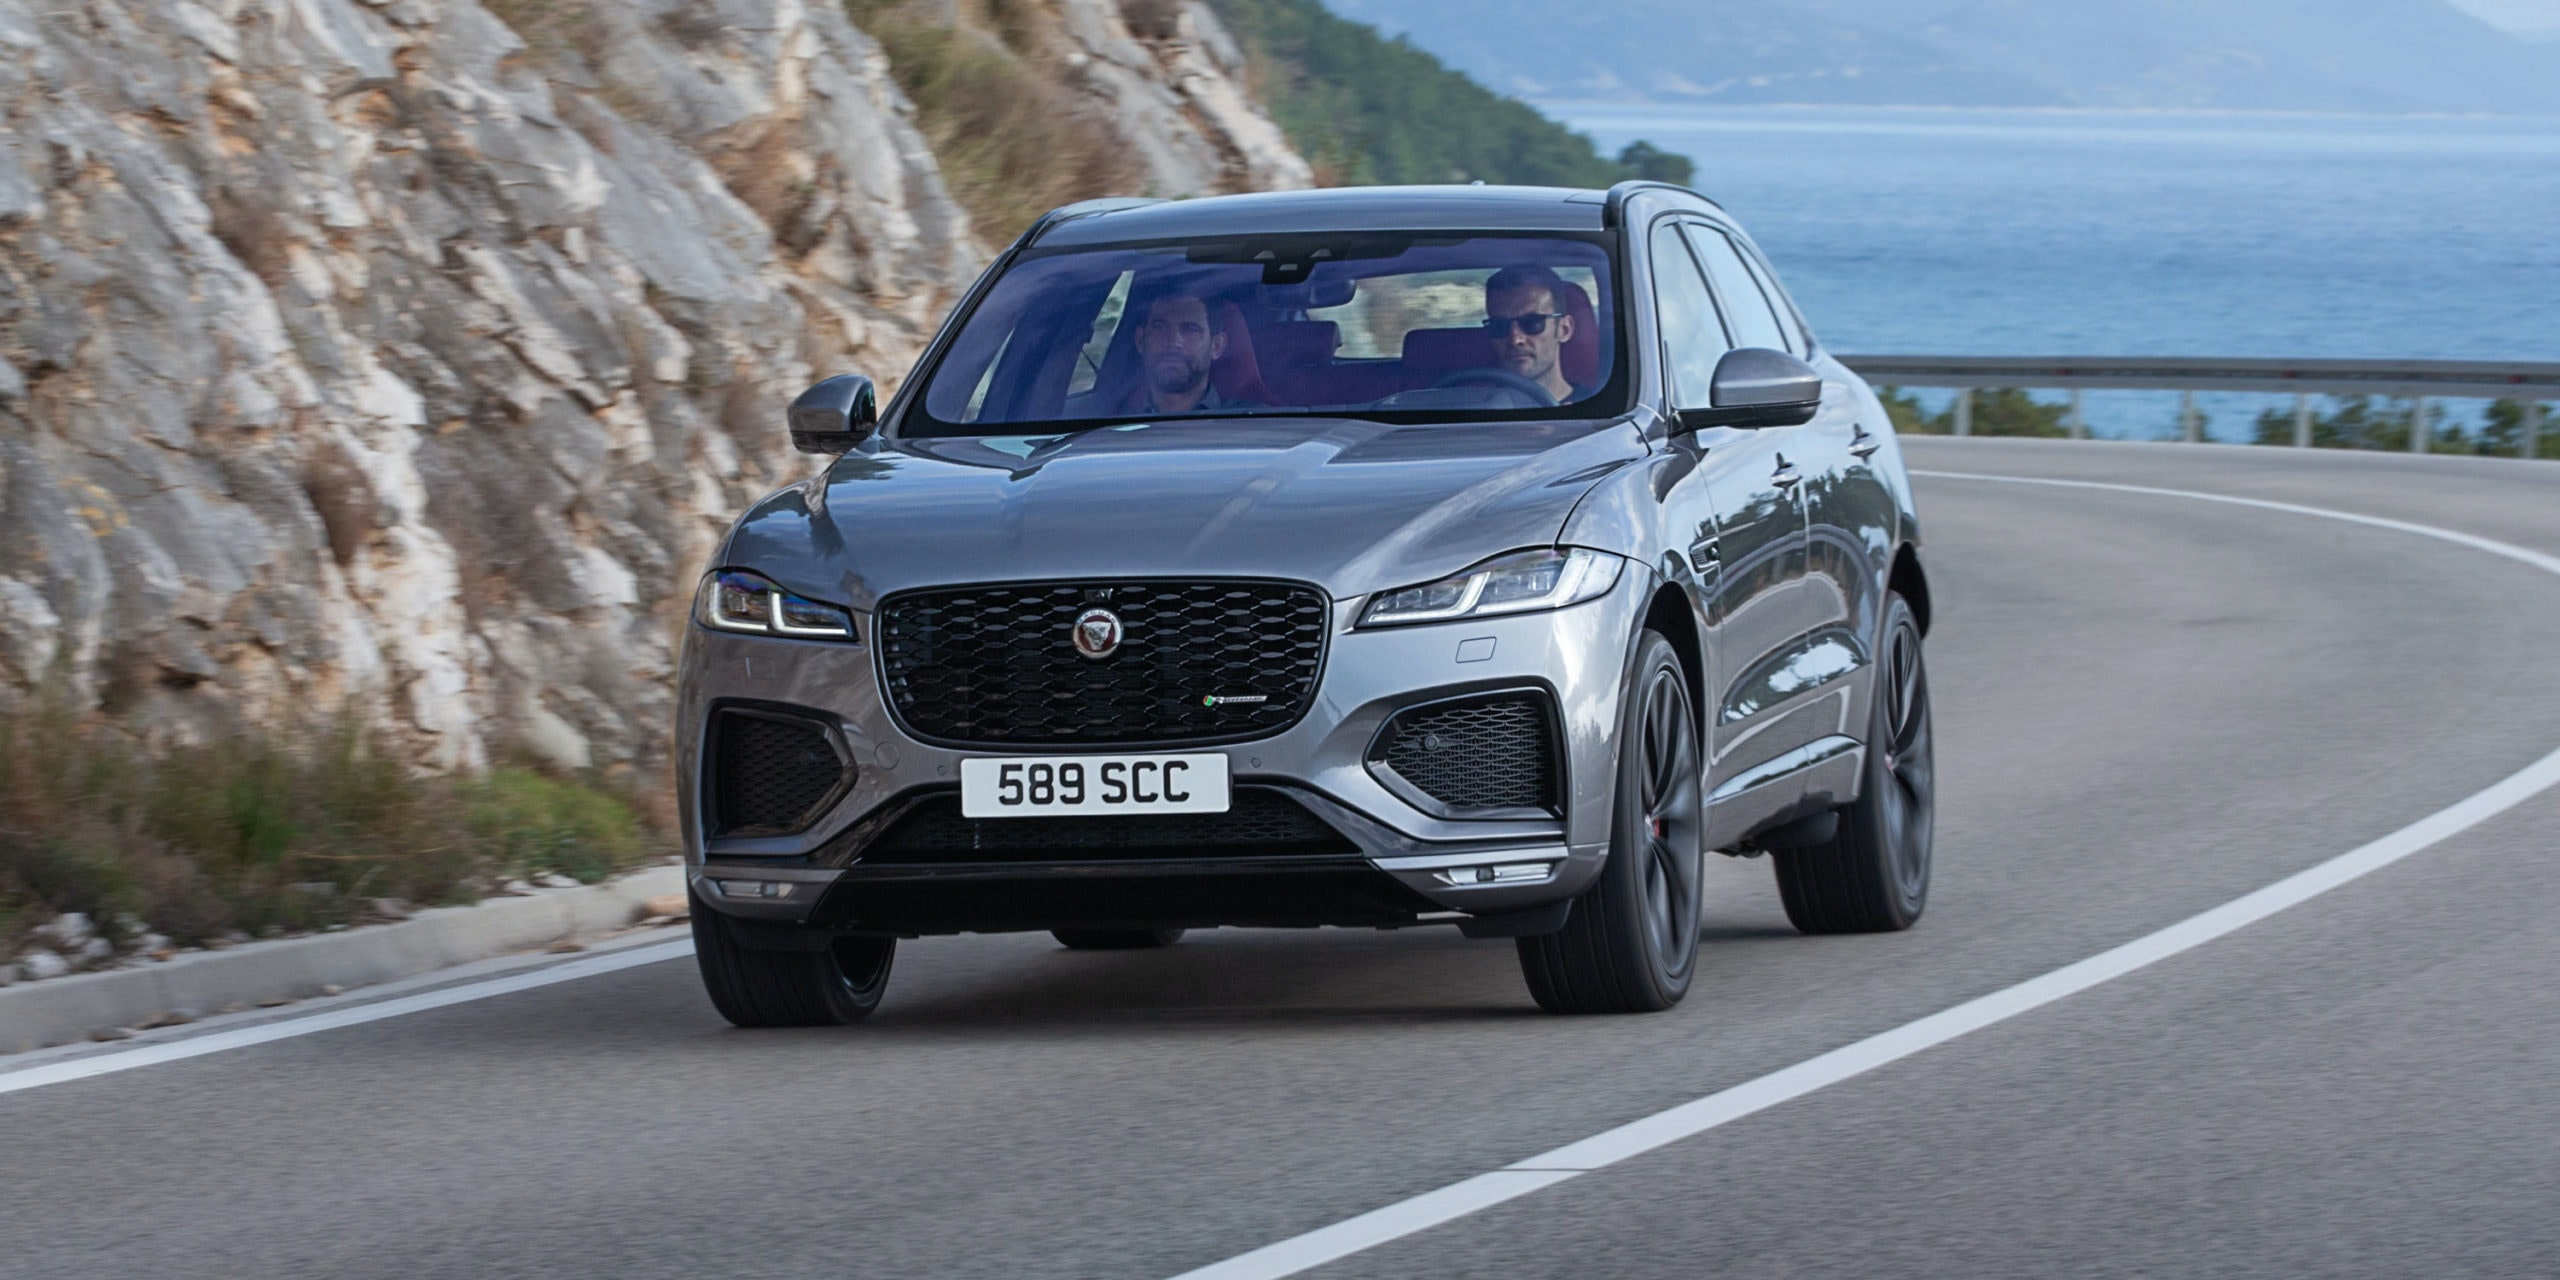 2021 Jaguar F Pace Hybrid Revealed Price Specs And Release Date Carwow